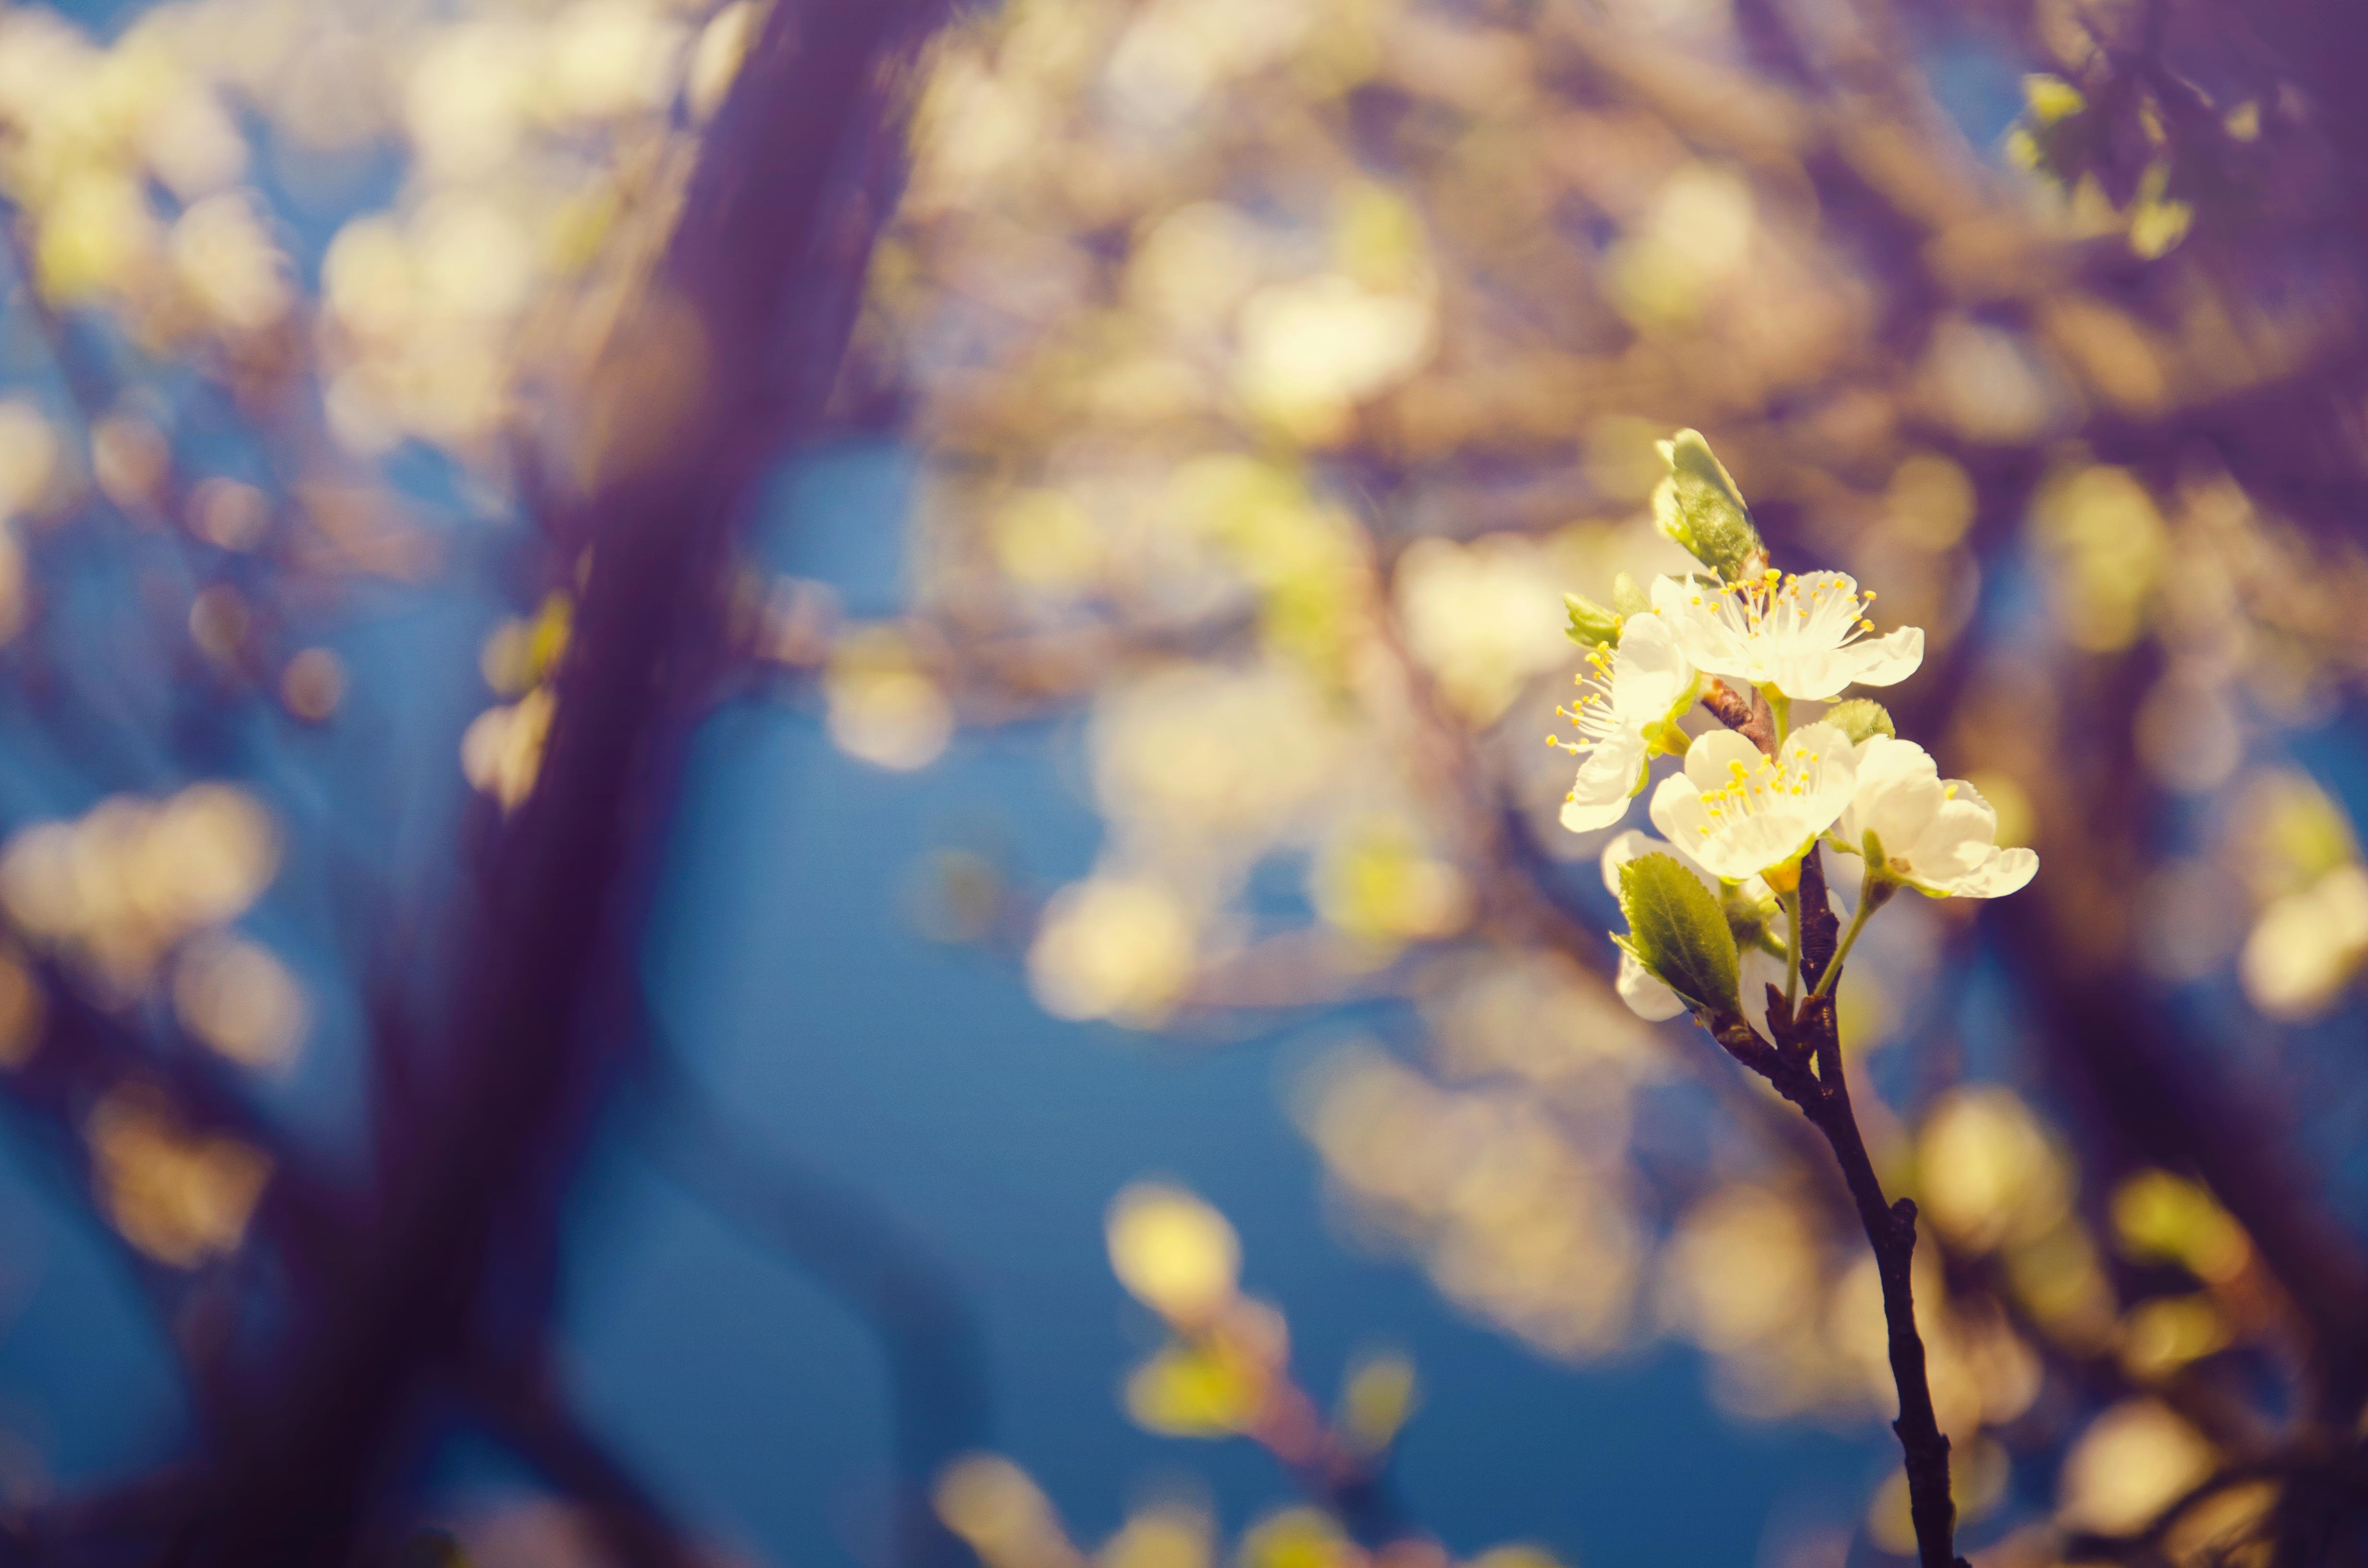 Wonderful Nature - Flowers of Spring wallpaper